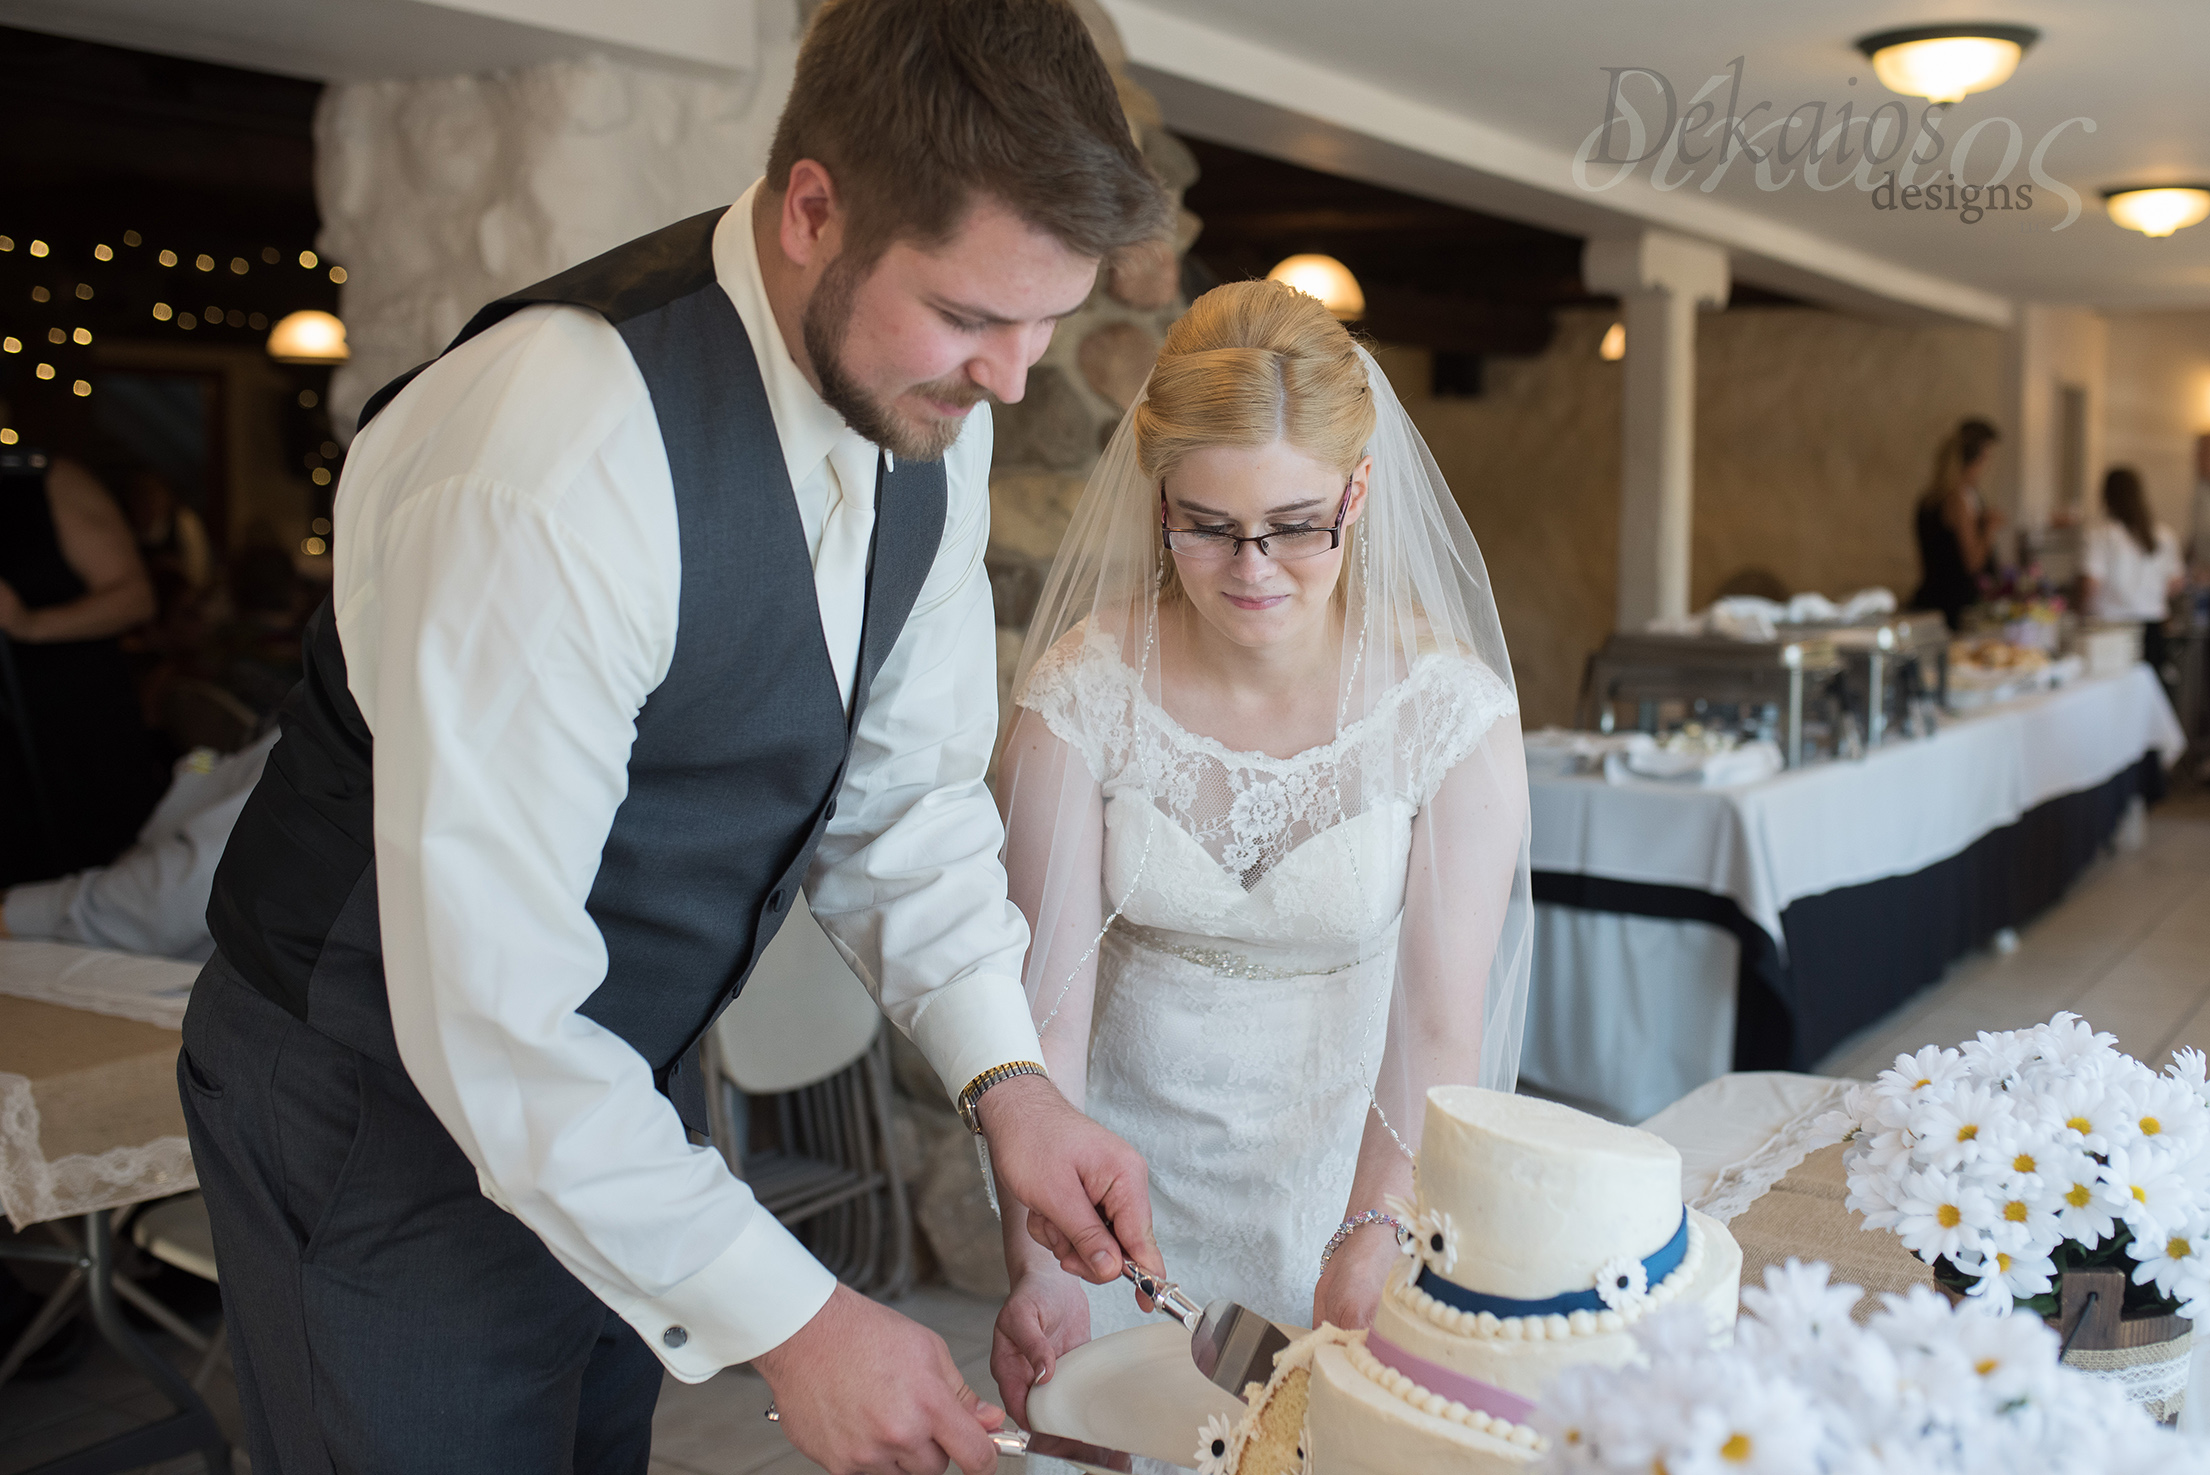 After dinner was the cake cutting. It was a beautiful cake.